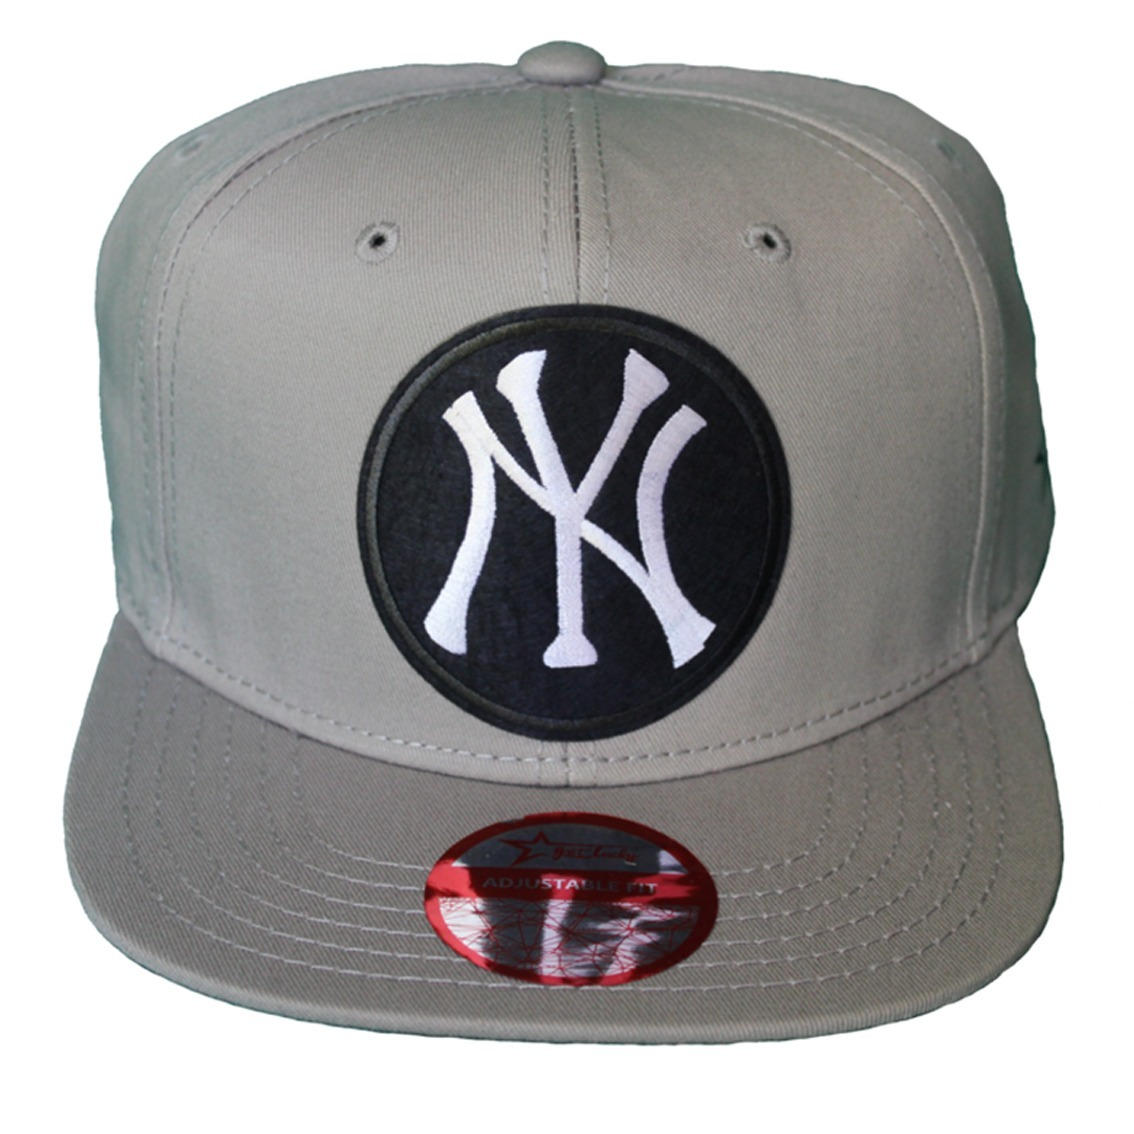 b623428c211f4 gorra new york yankees get lucky calidad original algodon. Cargando zoom.